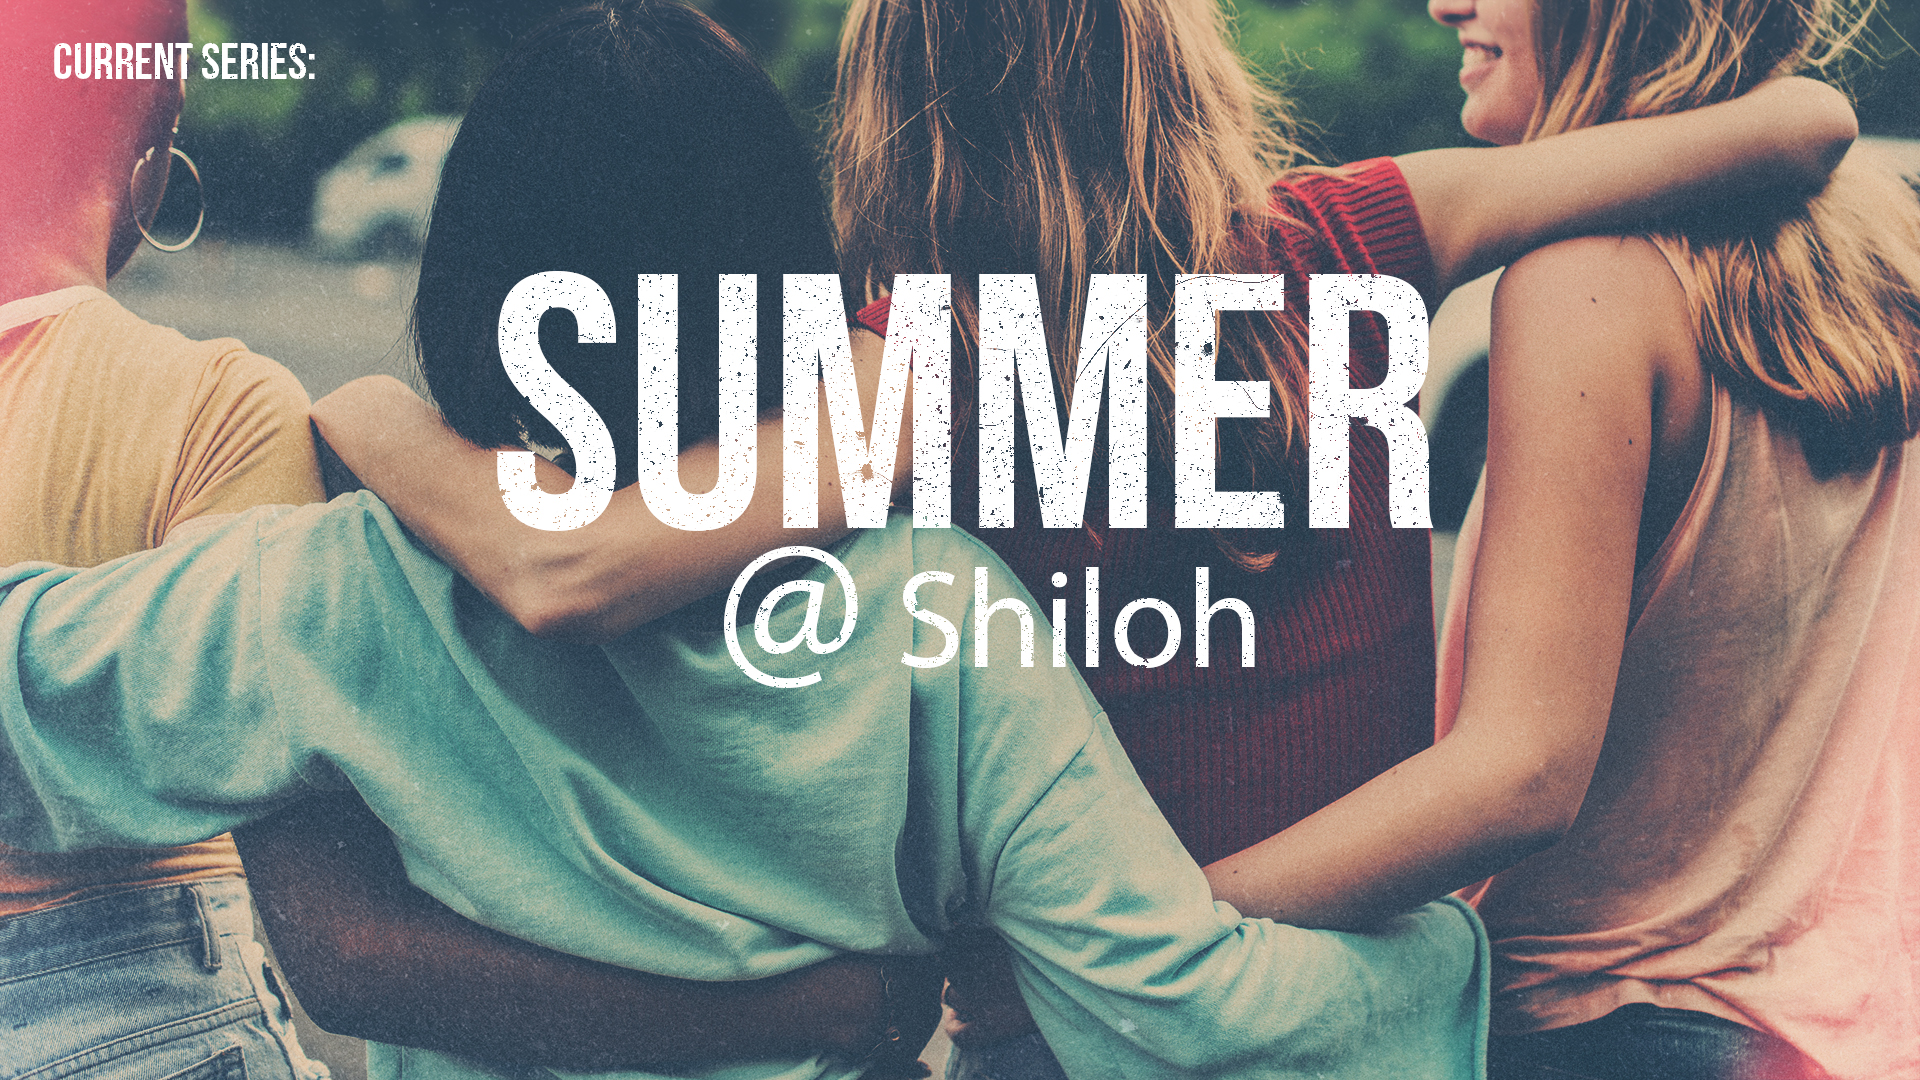 Current Series: Summer at Shiloh